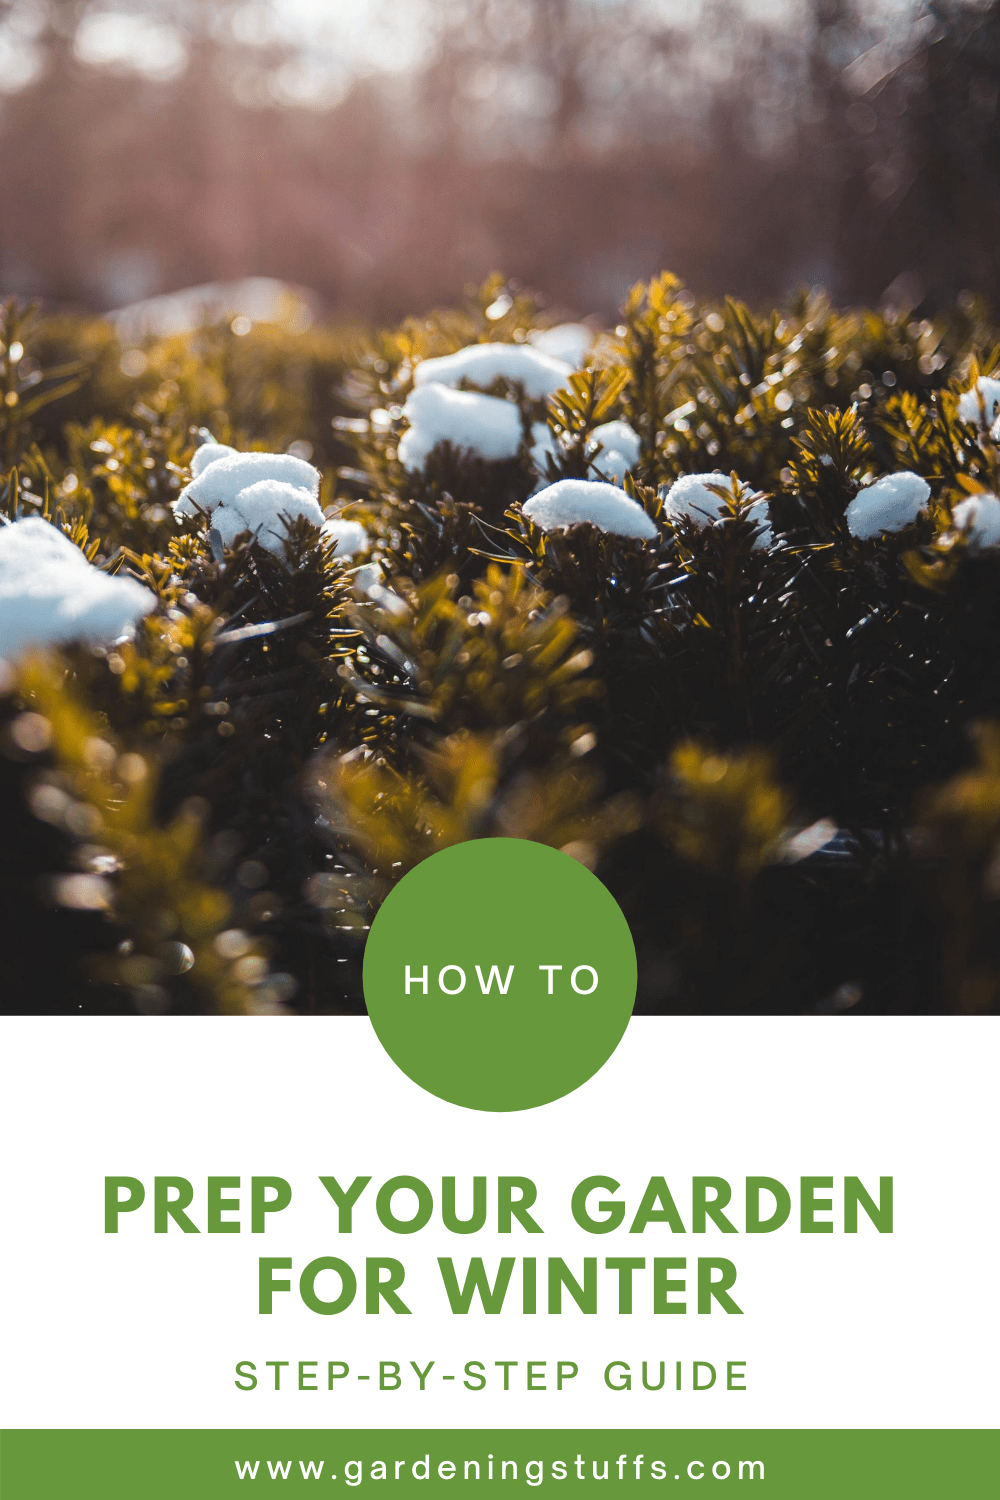 Winter is coming and your annual greens are almost saying goodbye. Read on to know how you can prep your garden before winter comes, and get ahead of your spring gardening chores while others are still in a frenzy.